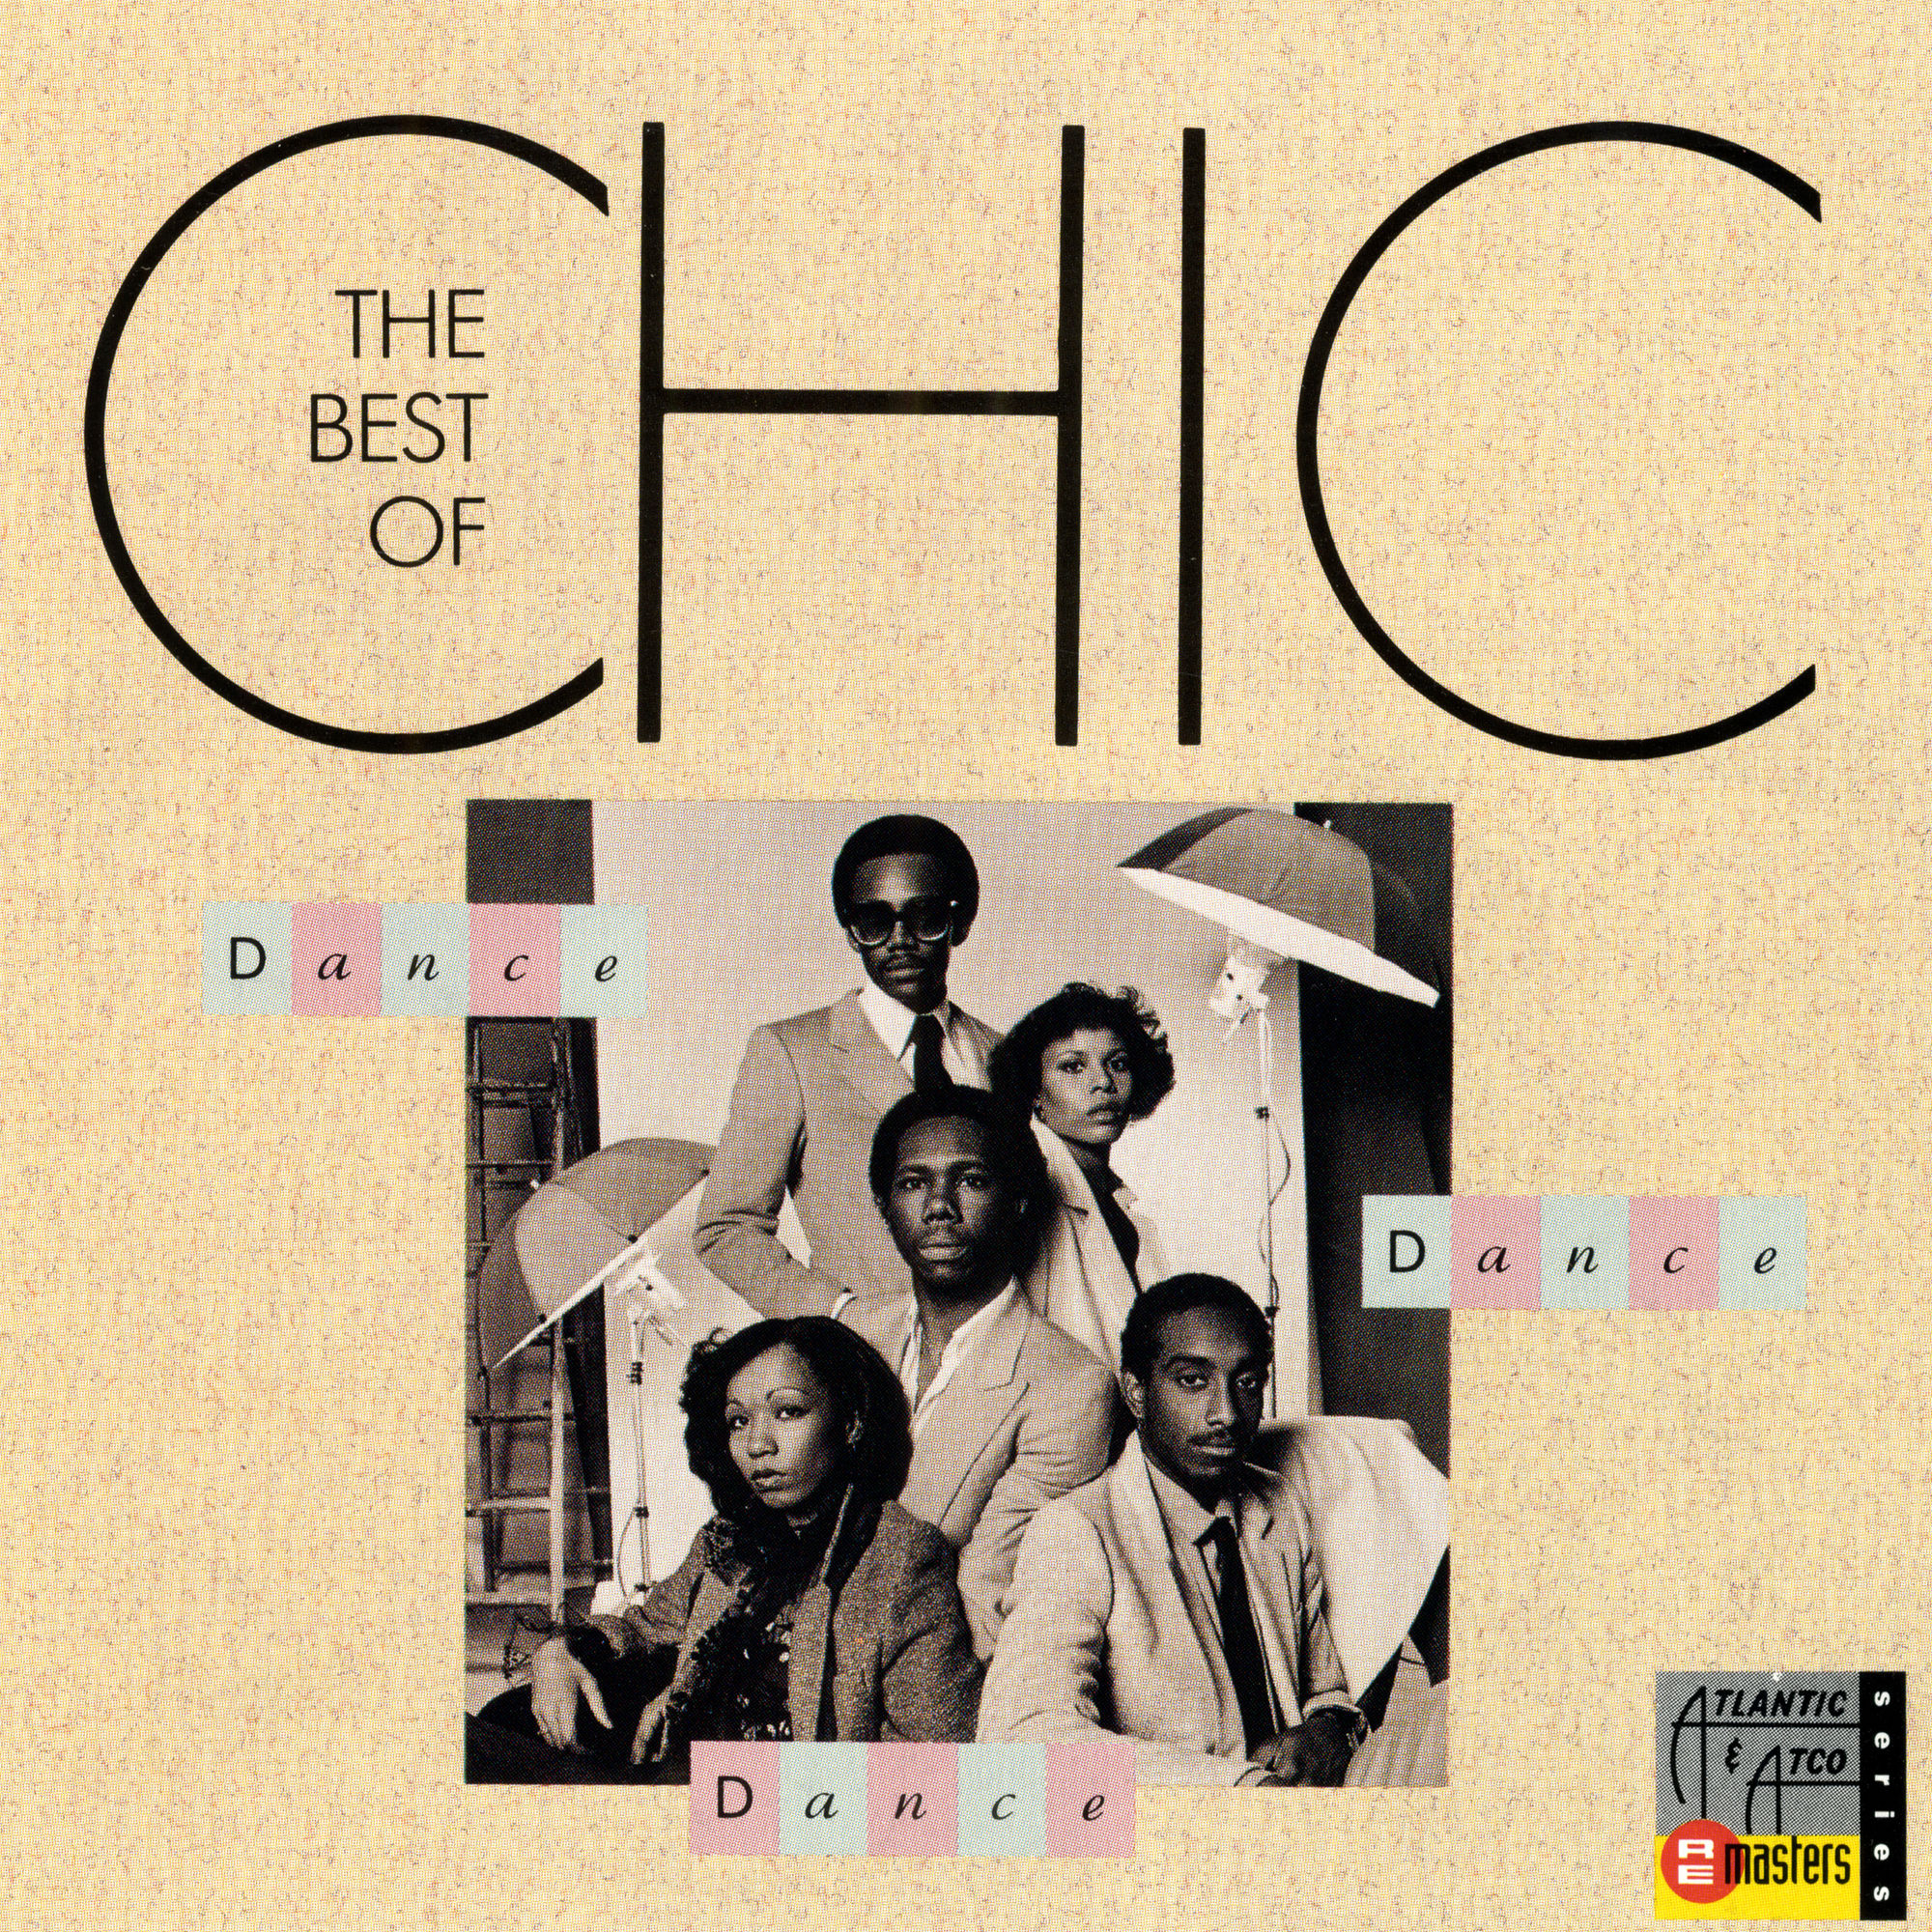 Art for Le Freak by Chic